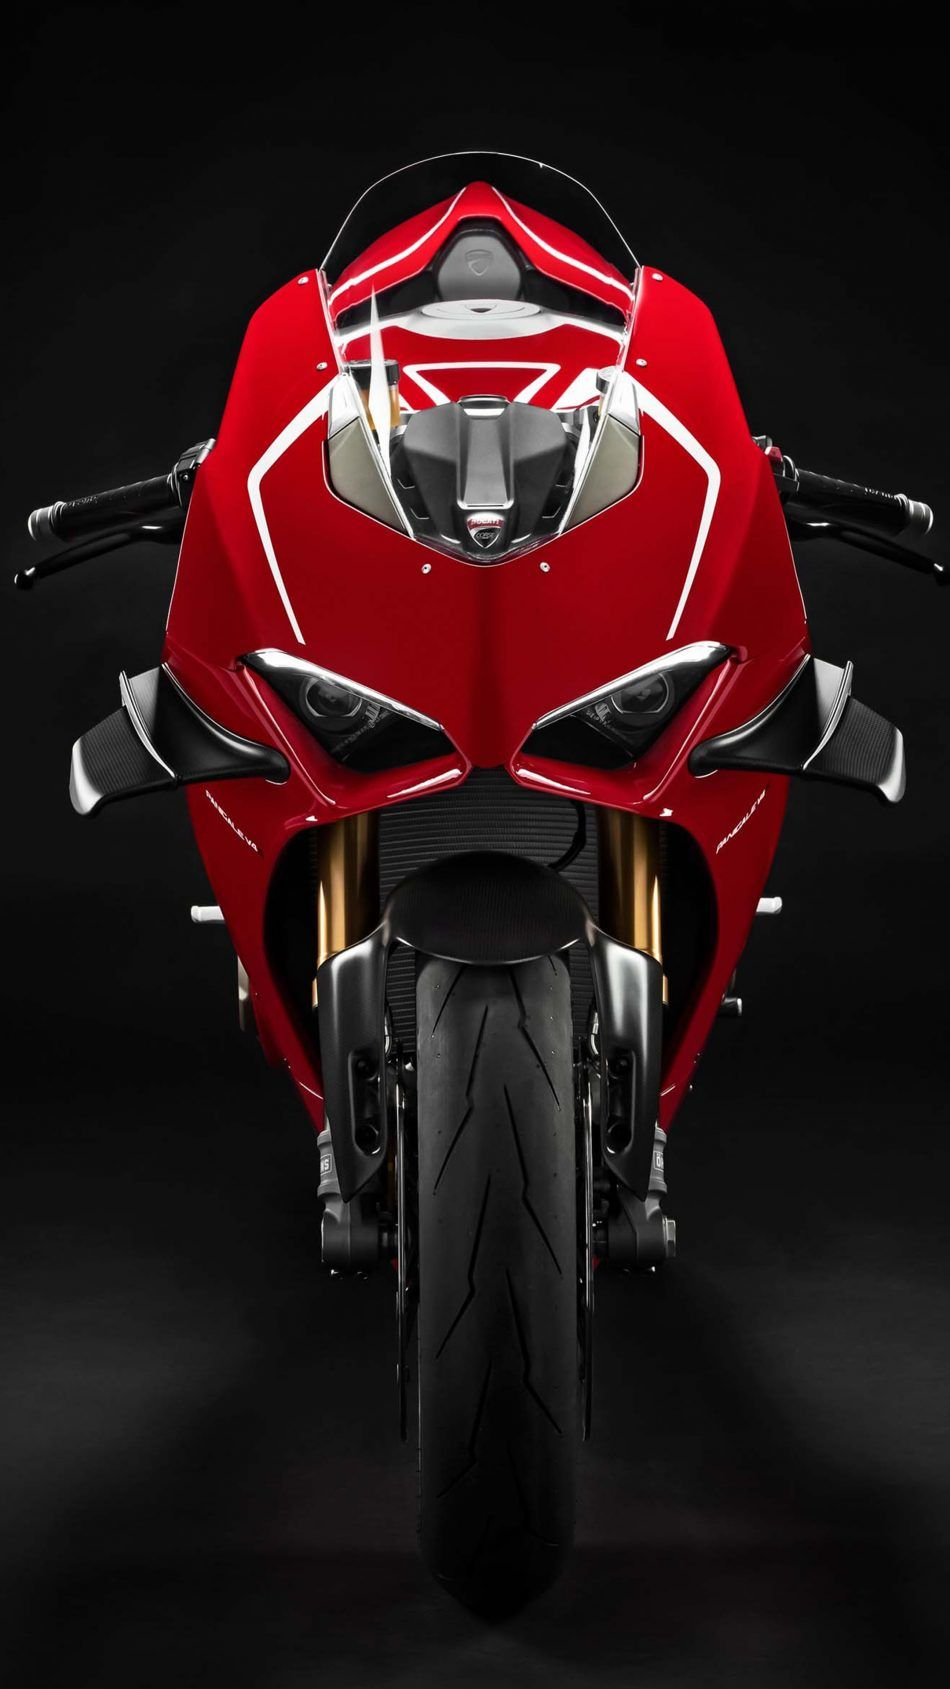 Ducati Panigale V4 R | Bike Wallpapers | Ducati, Ducati ...